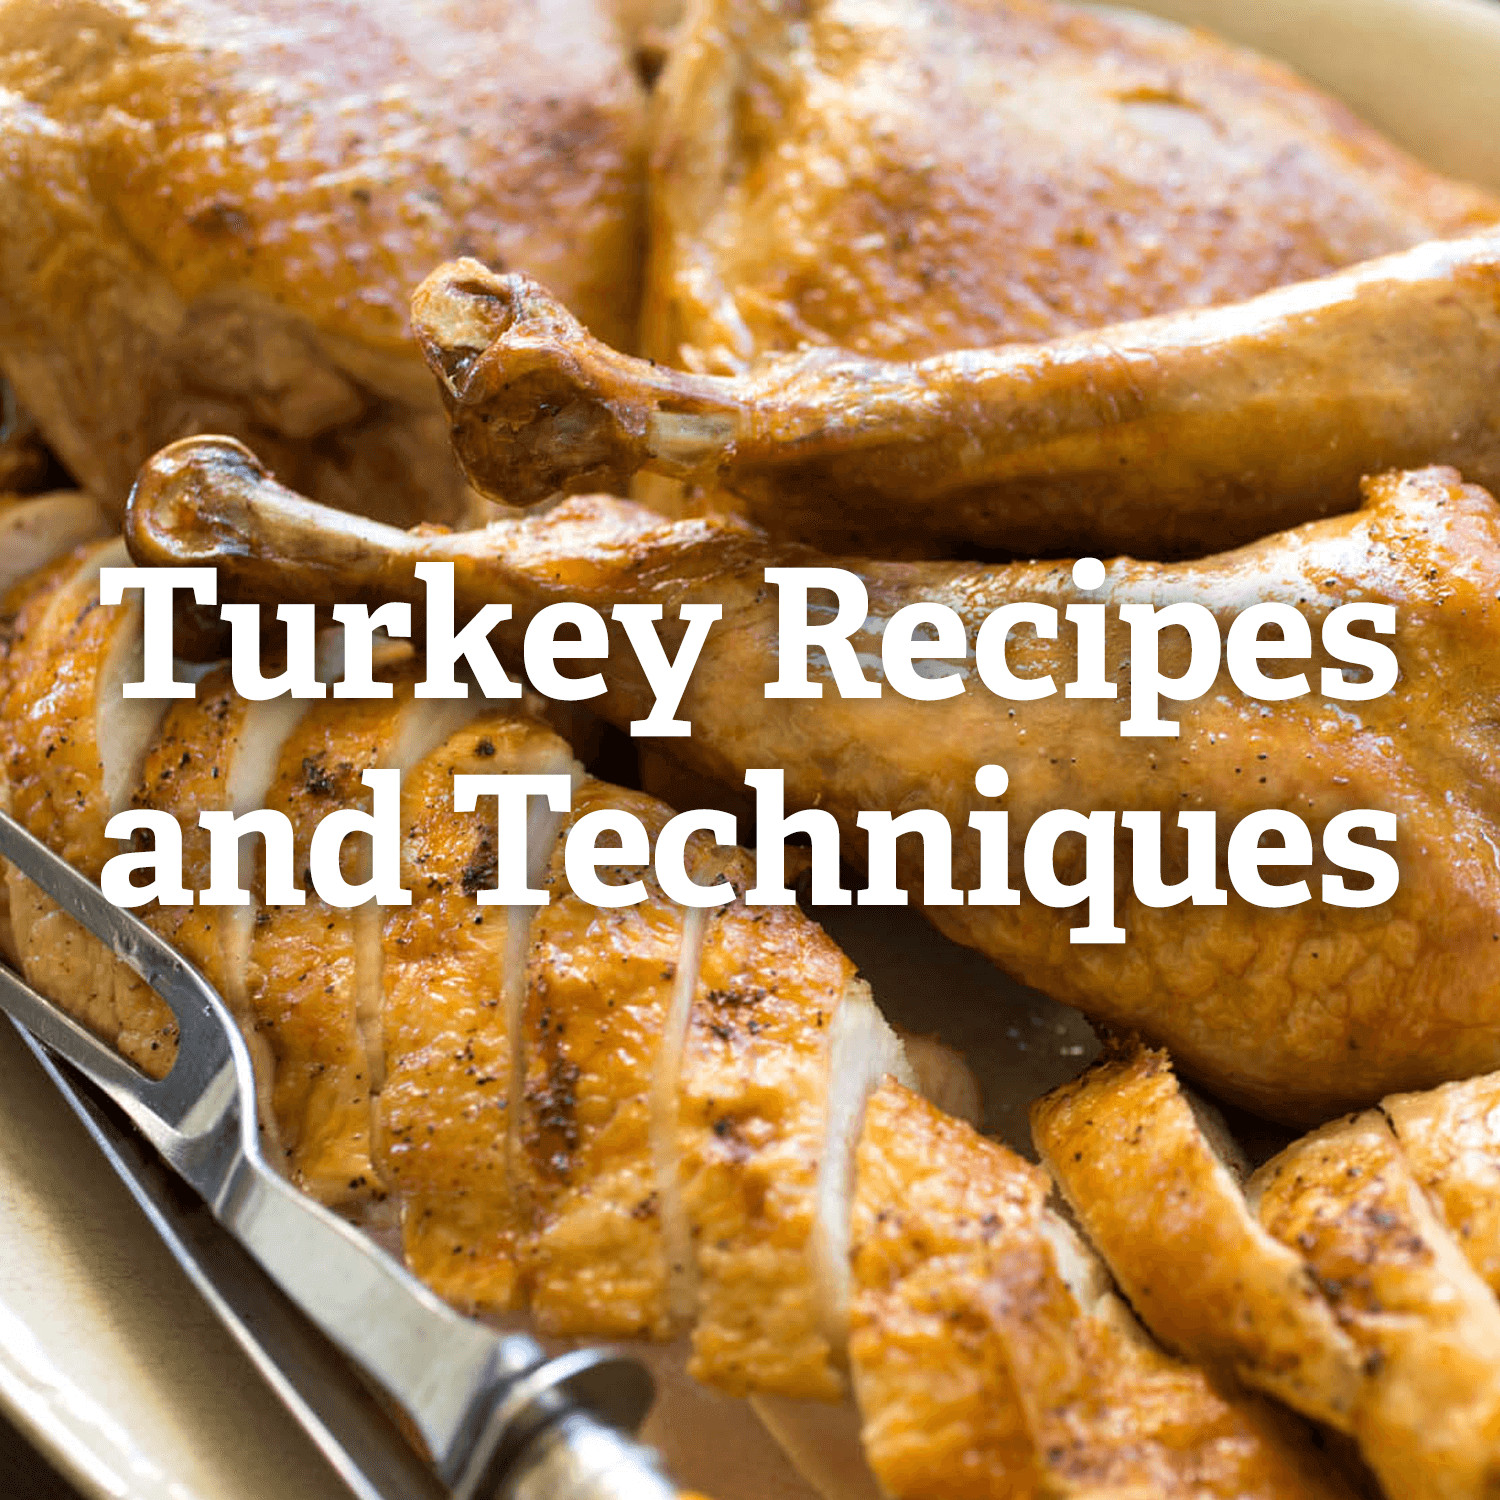 Recipes For Thanksgiving Turkey  Thanksgiving Turkey Recipes and Techniques